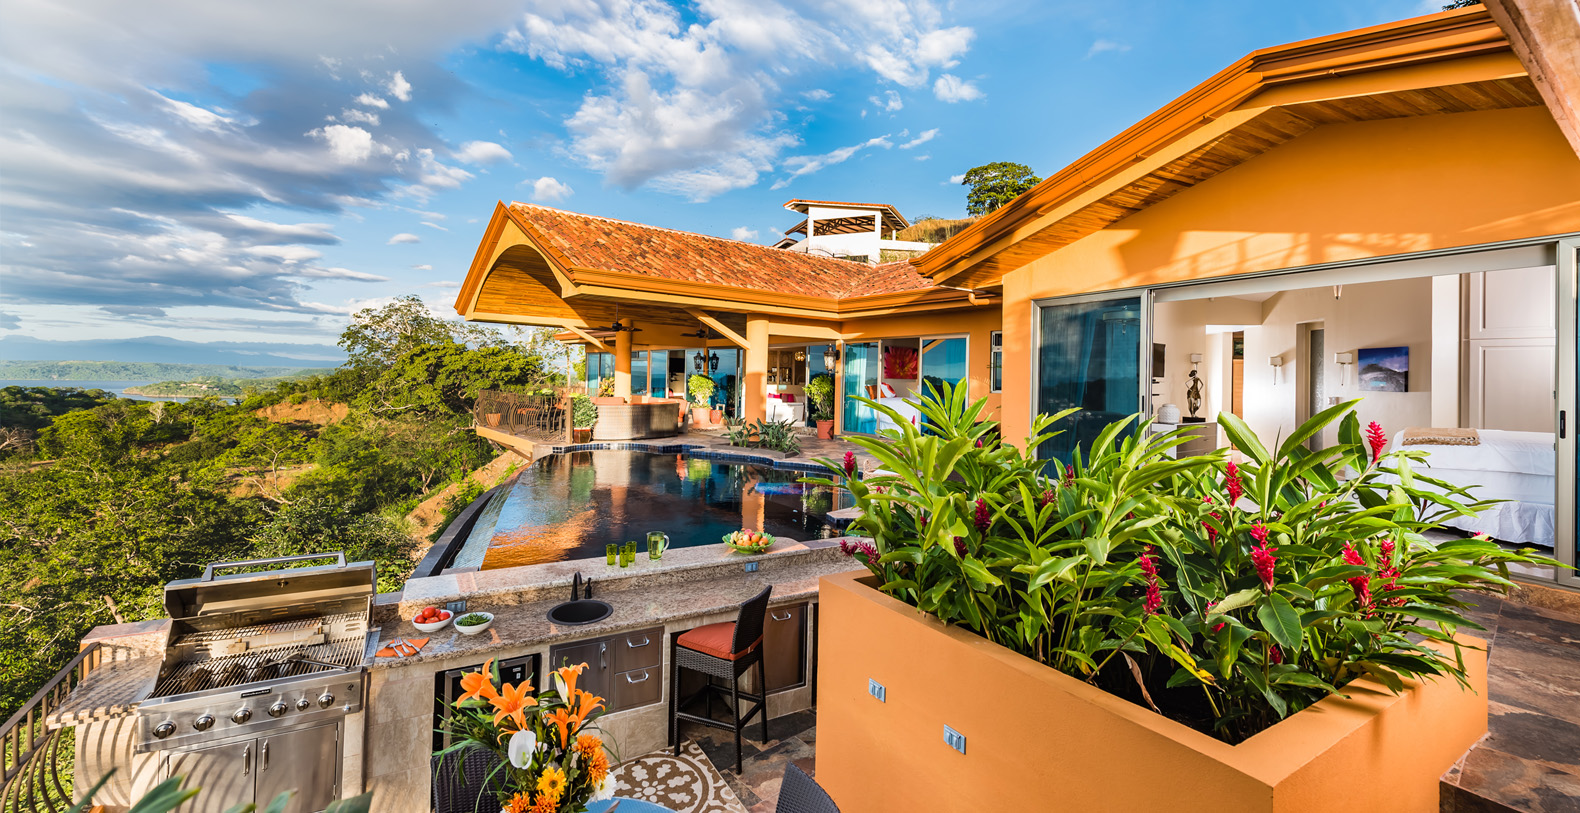 Casa dare to dream guanacaste holiday letting vacation for Costa rica vacations rentals